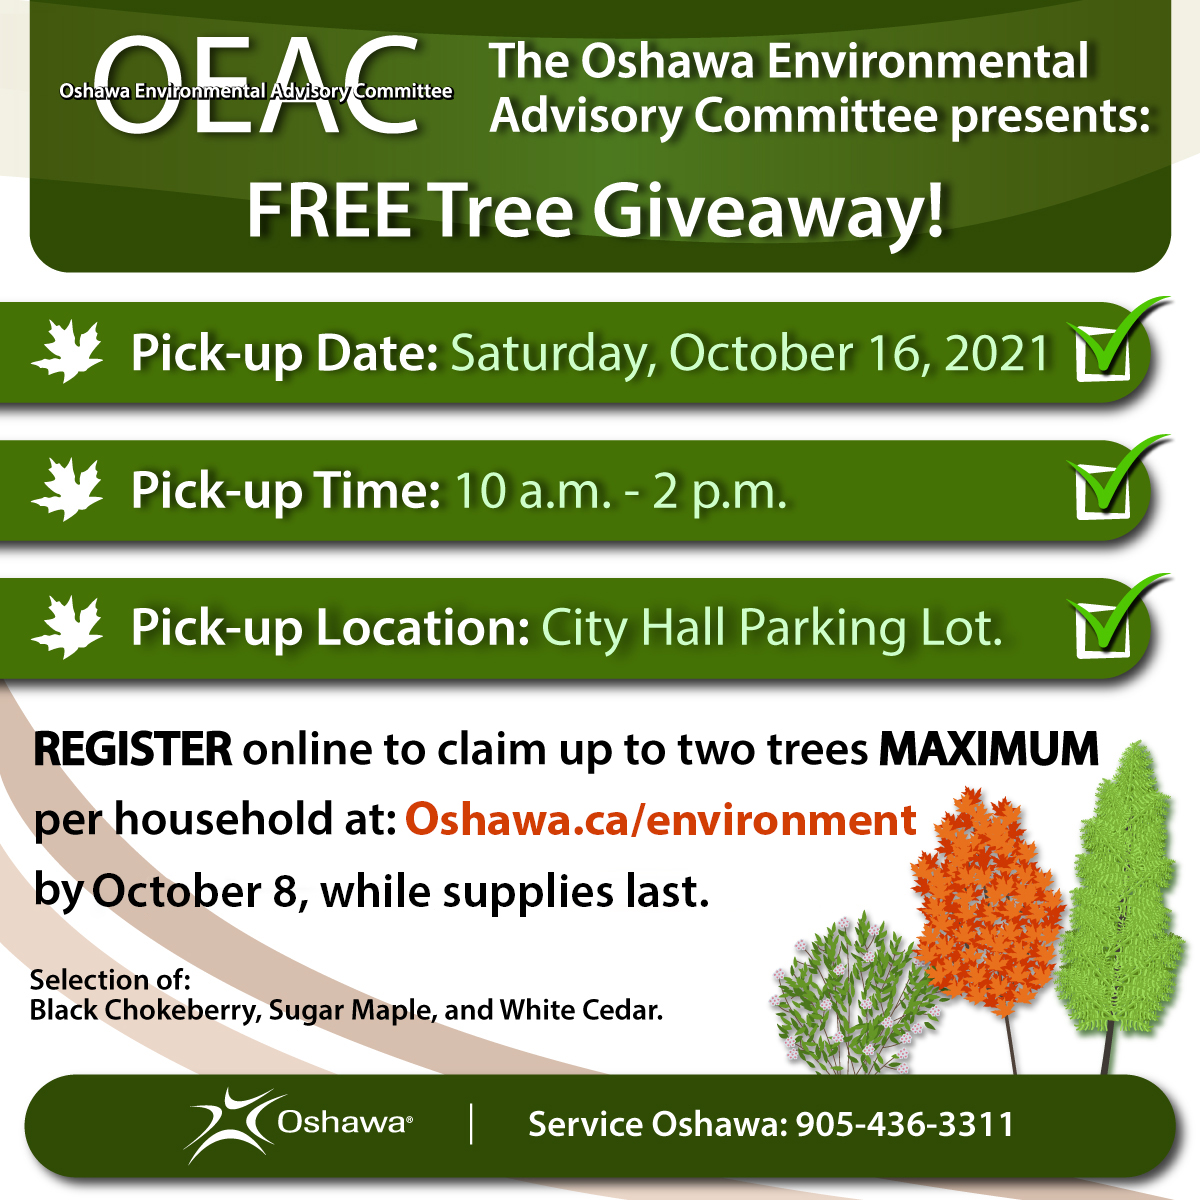 OEAC Tree giveaway infographic